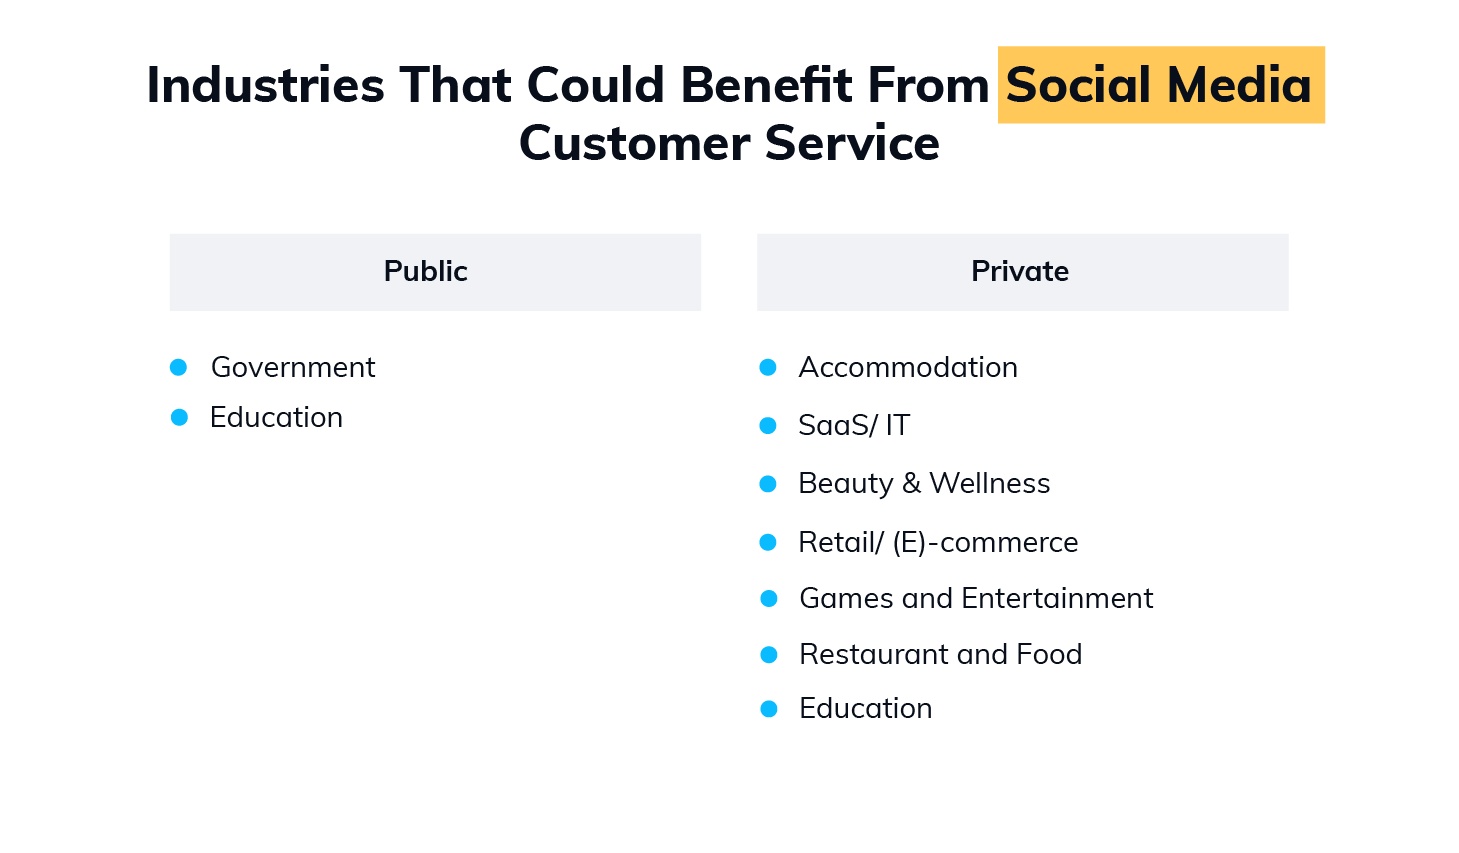 What Industries Would Benefit from Social Media Customer Service the Most